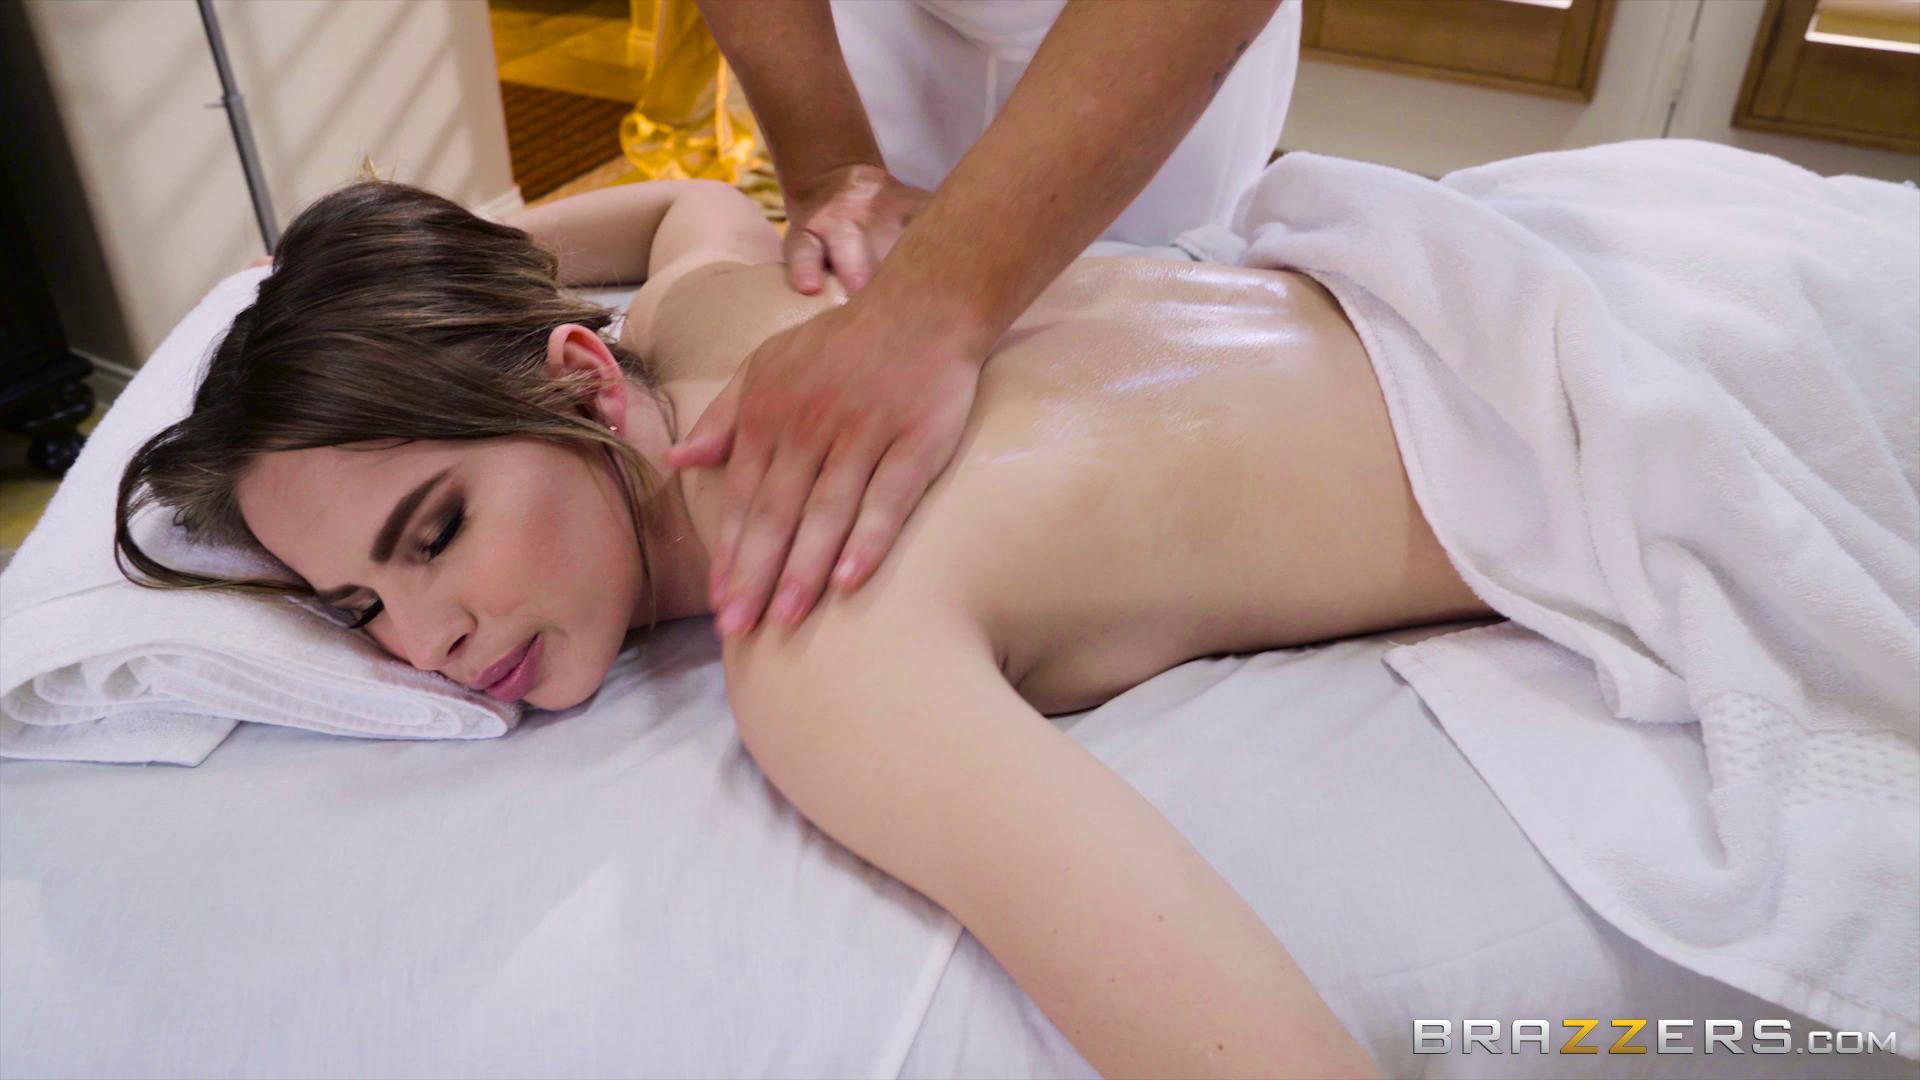 DirtyMasseur – Jillian Janson Method To My Tight Ass